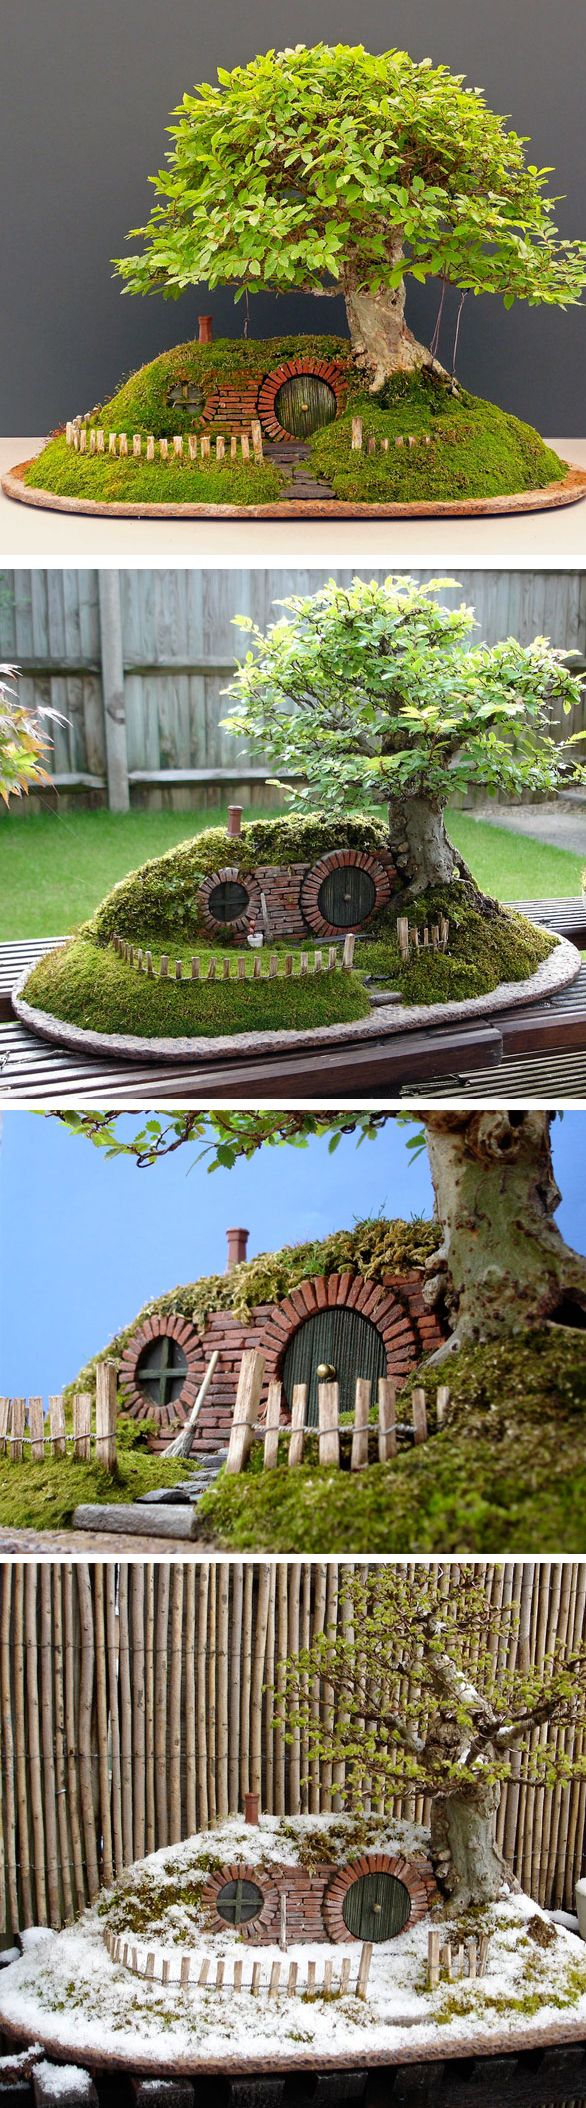 Hobbit home with bonsai by Chris Guise - want!